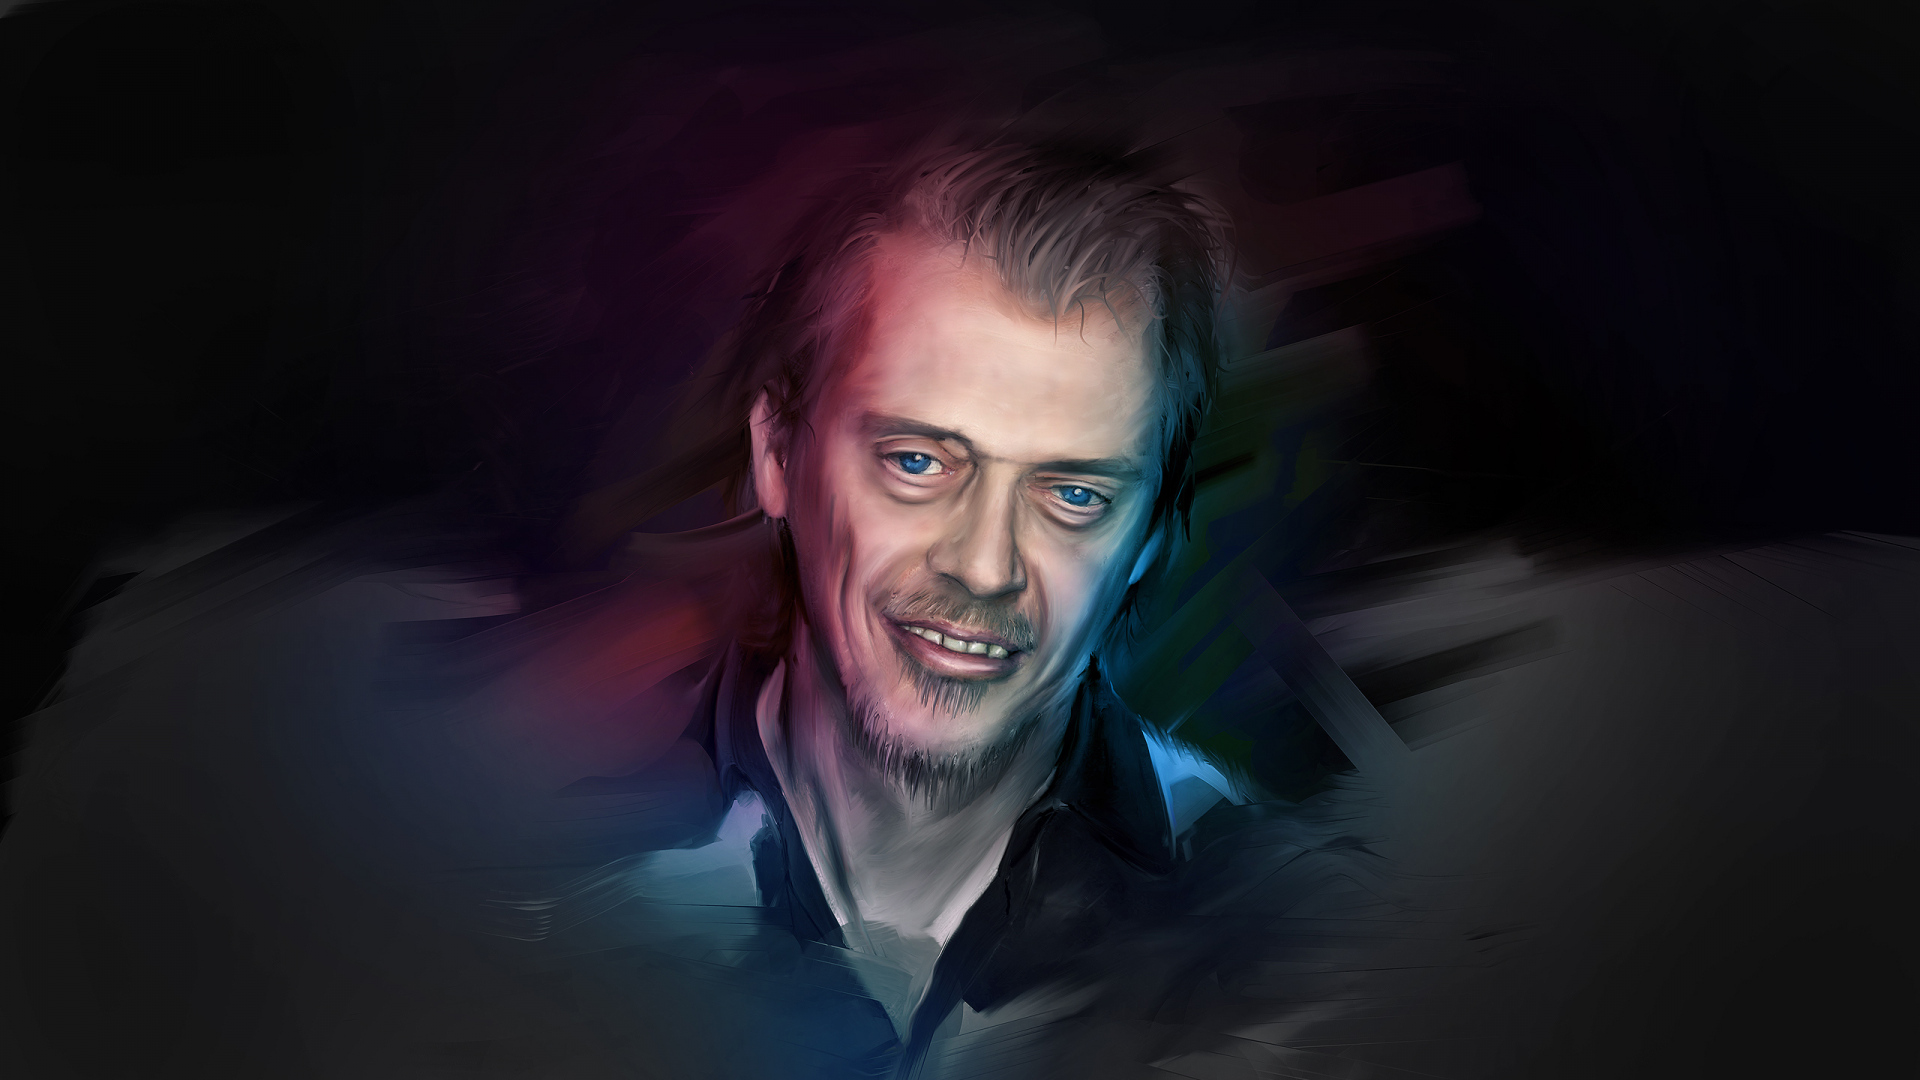 Steve Buscemi Wallpapers 28 WallpapersExpert Journal 1920x1080